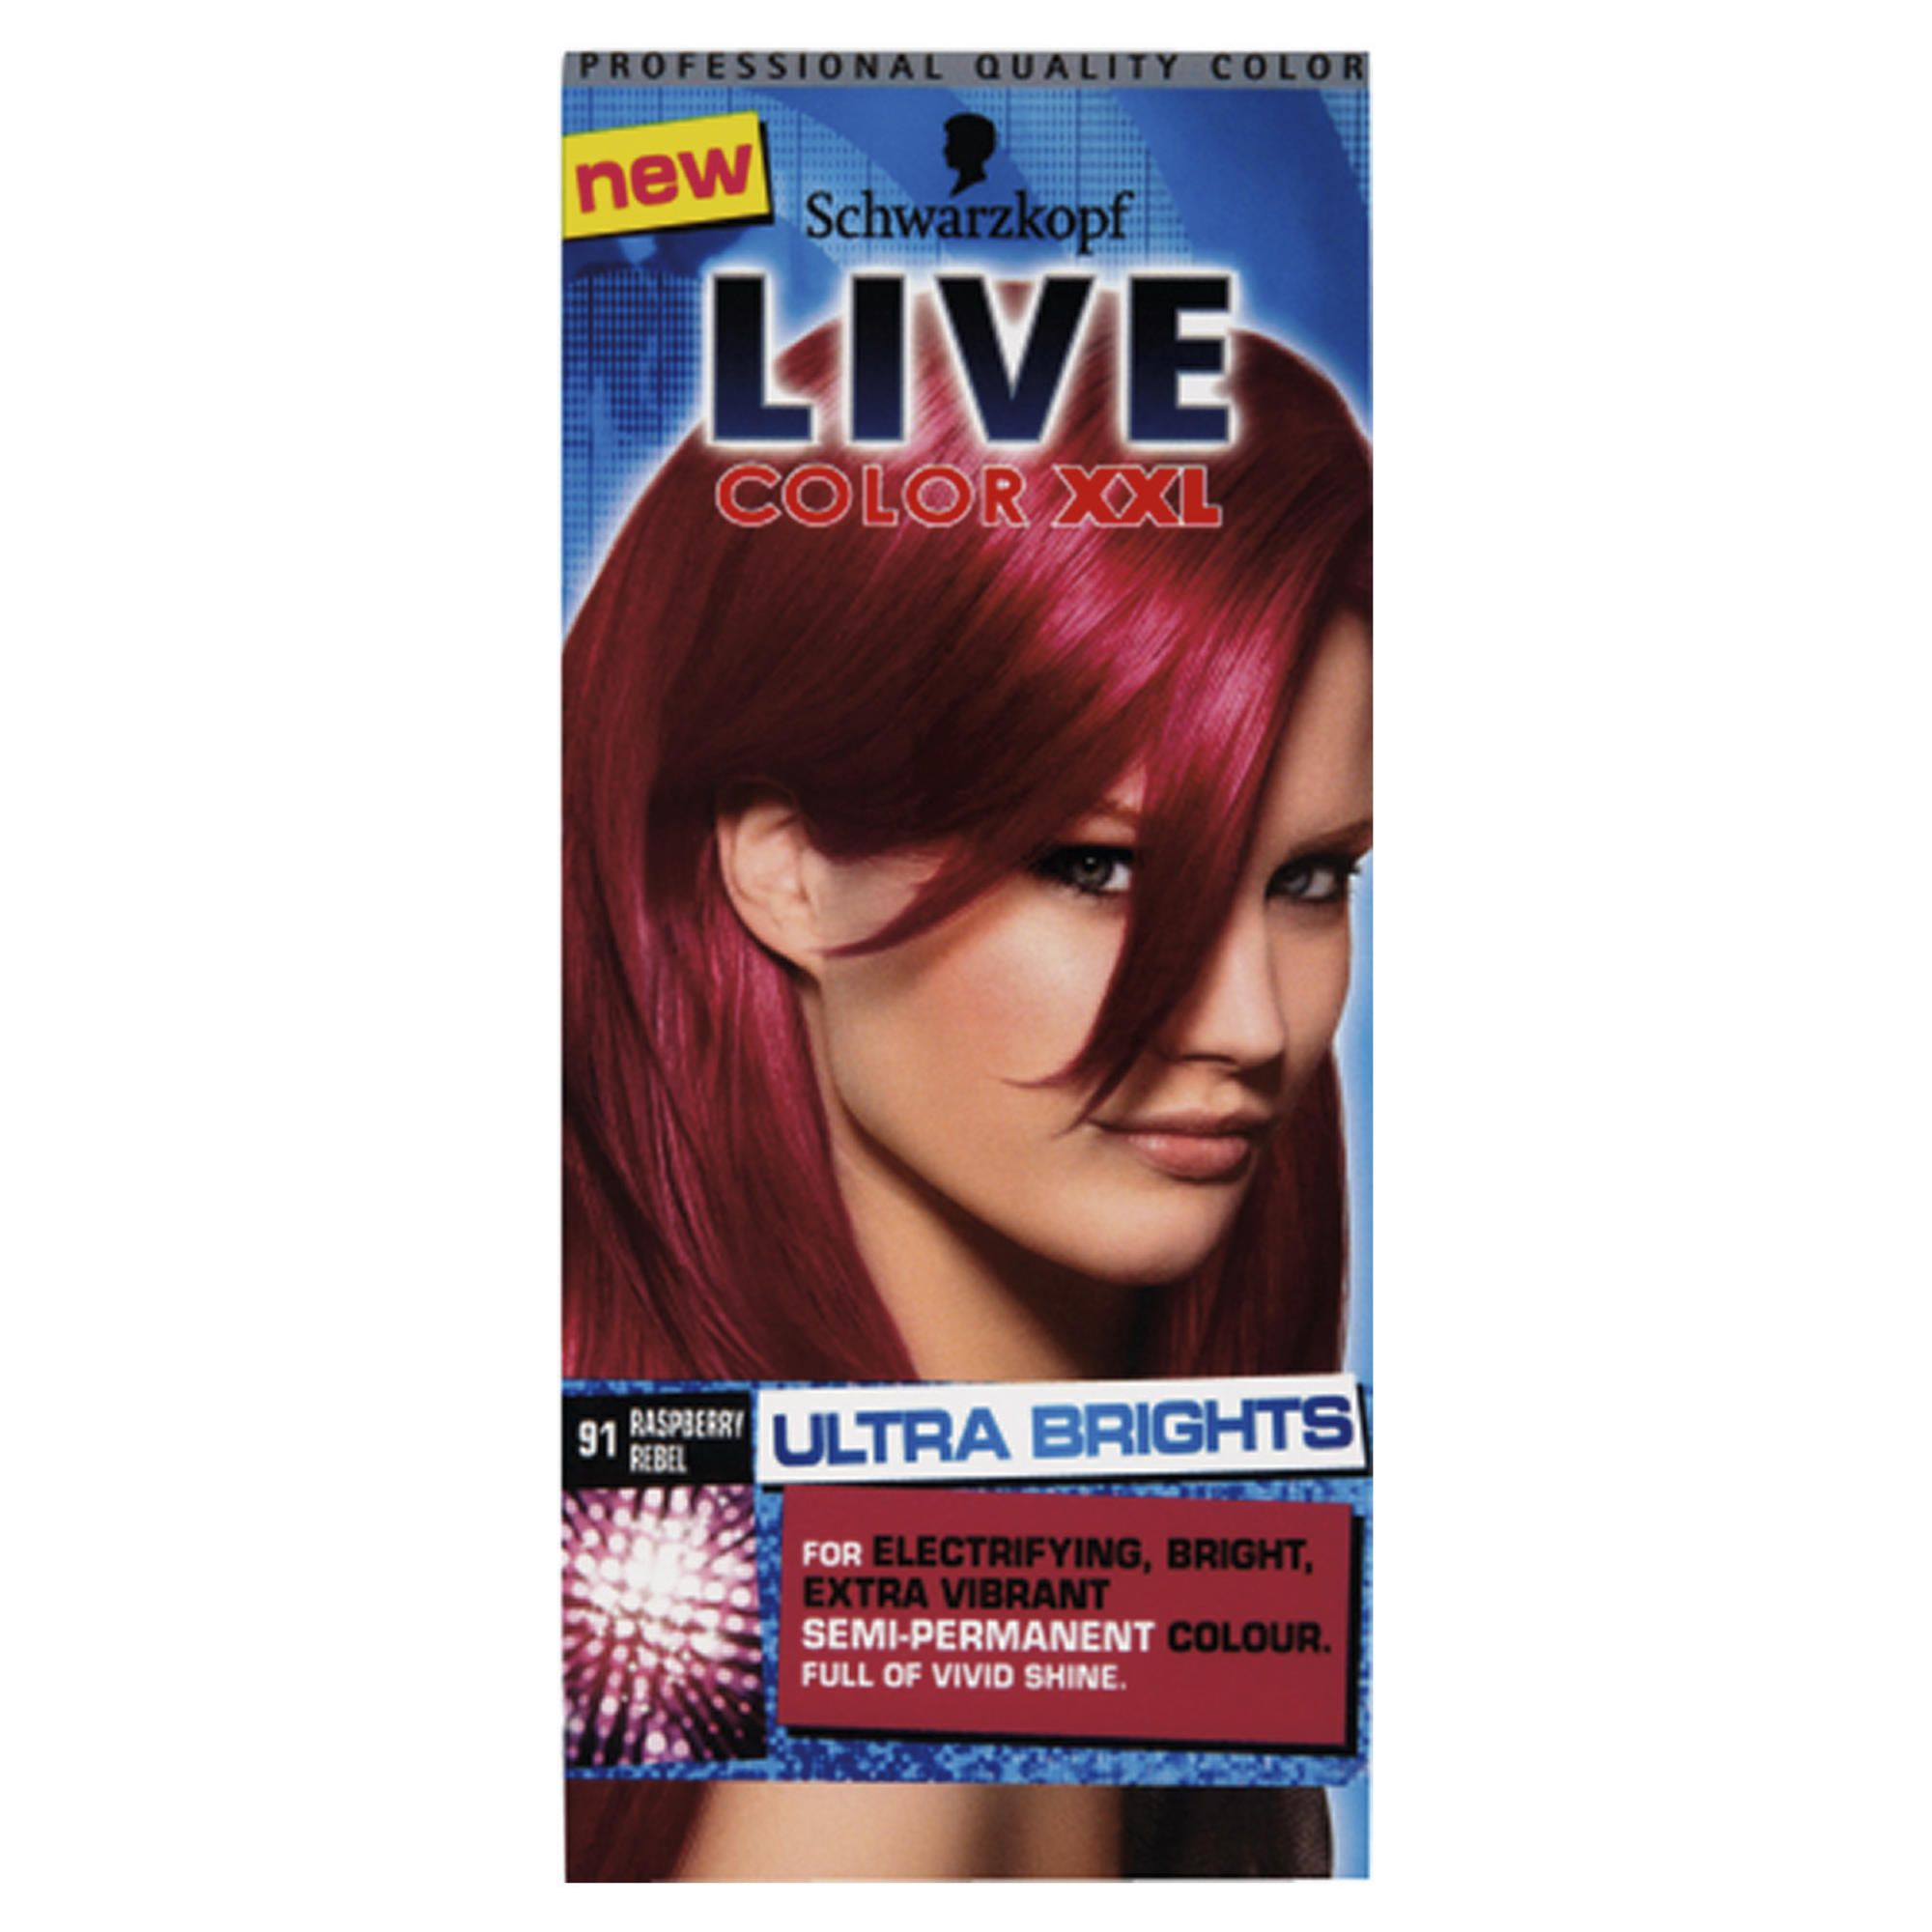 Schwarzkopf LIVE Color XXL Ultra Brights 91 Raspberry Rebel